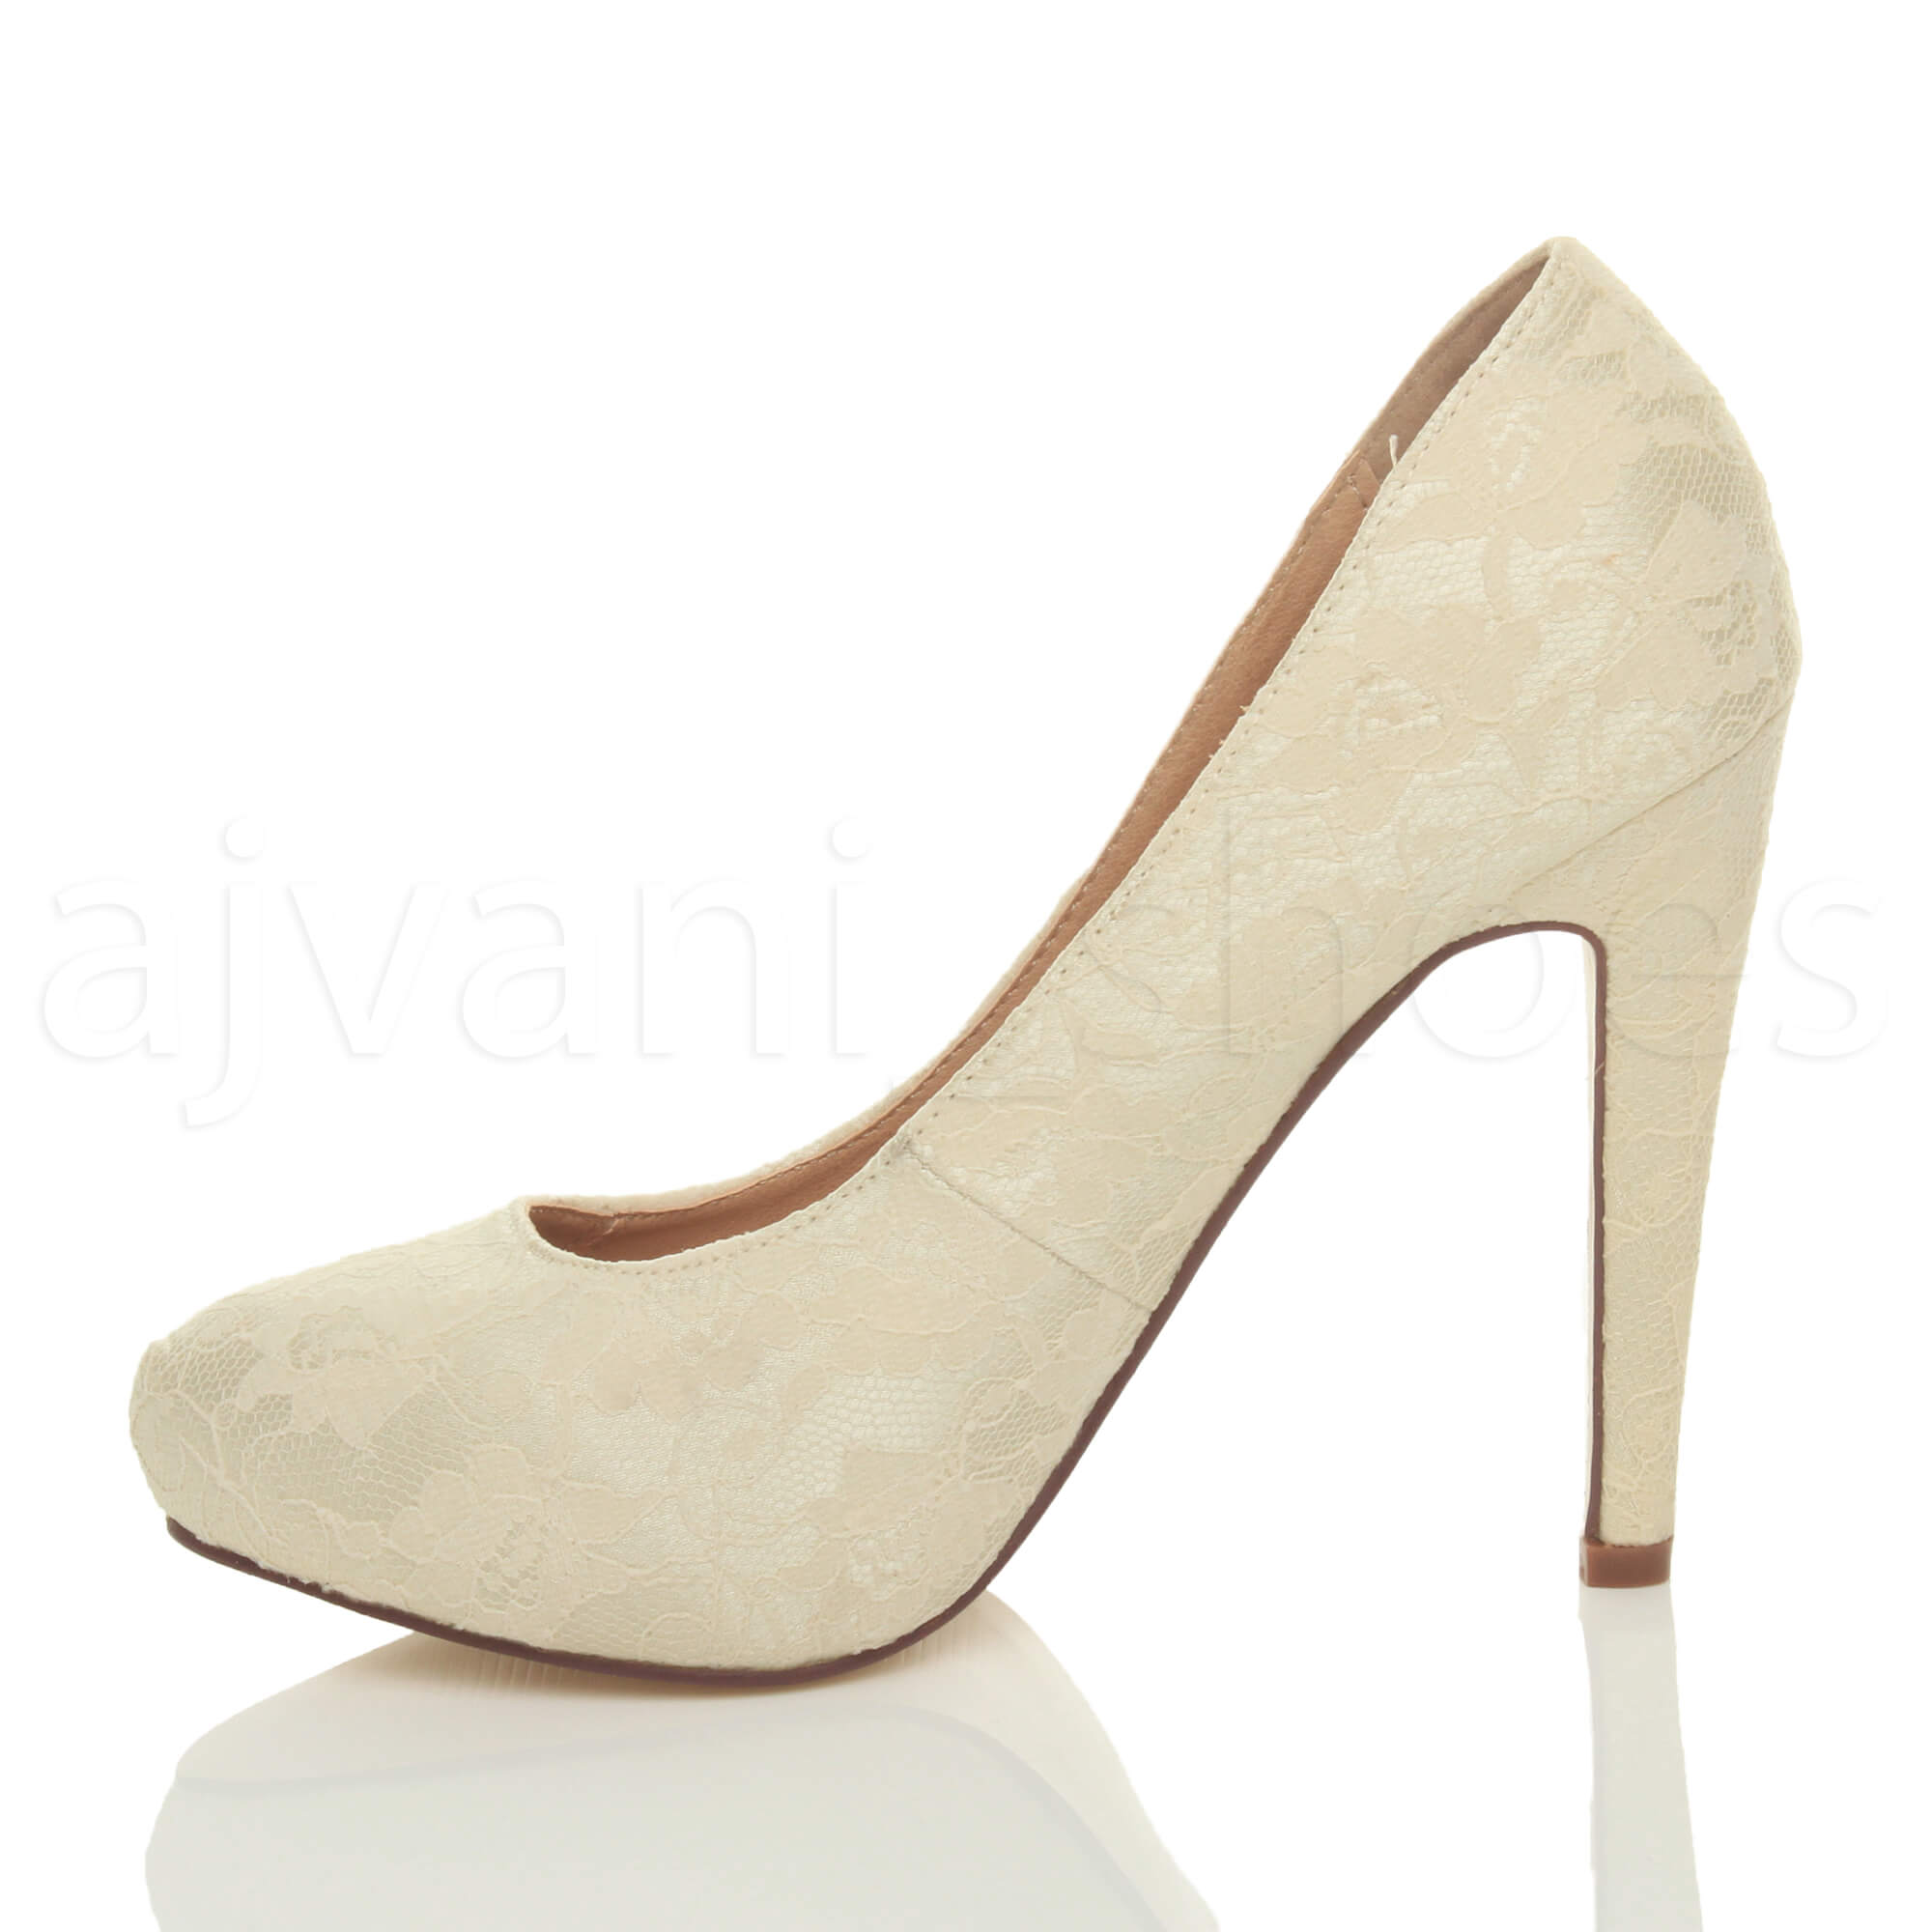 WOMENS-LADIES-HIGH-HEEL-CONCEALED-PLATFORM-COURT-SHOES-PARTY-PROM-PUMPS-SIZE thumbnail 19